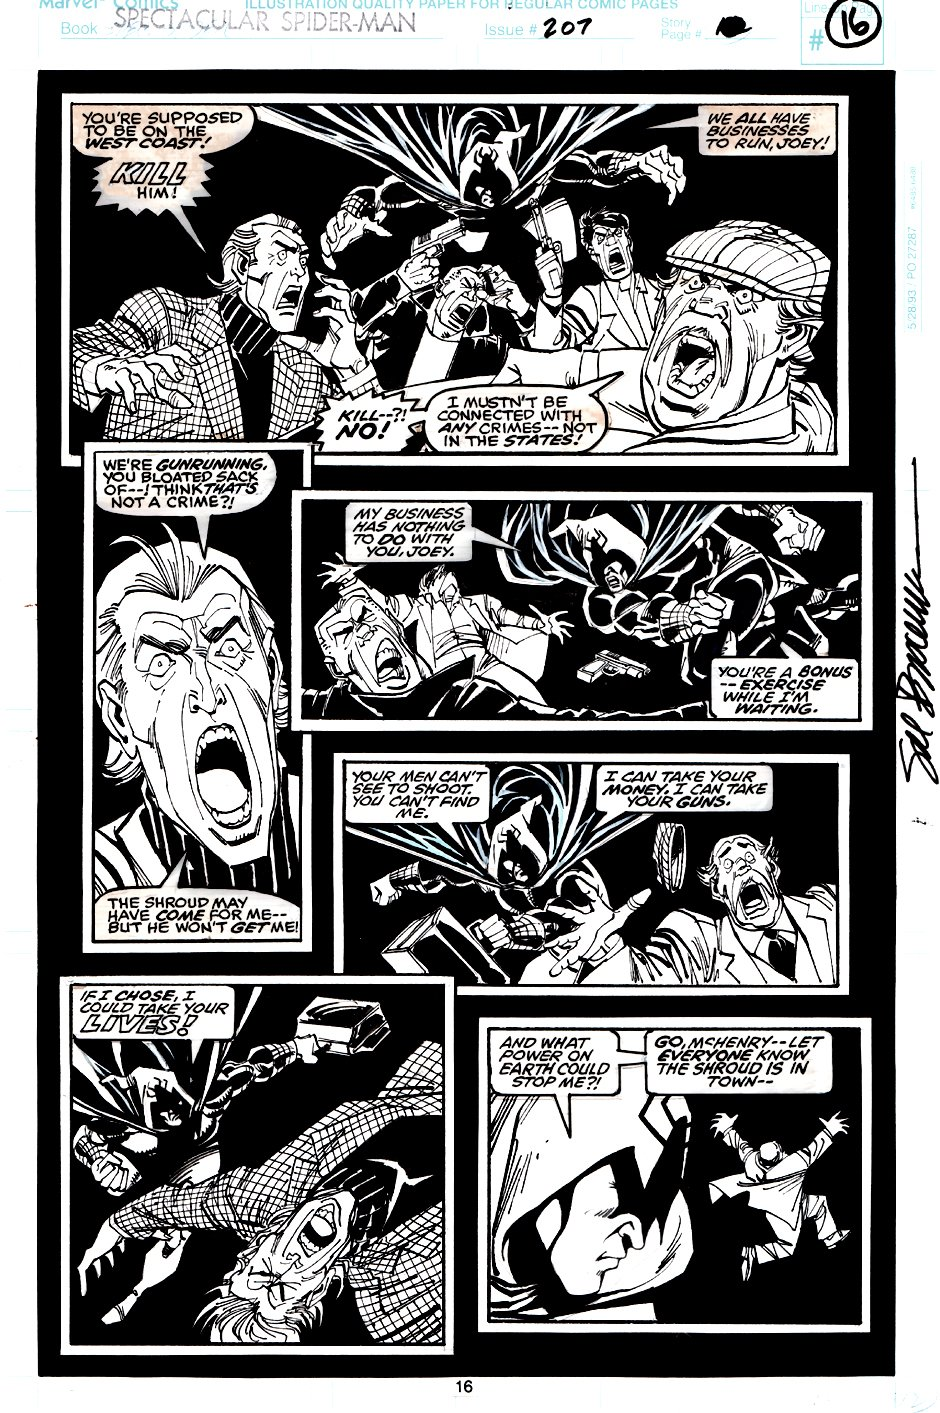 Spectacular Spider-Man #207 p 16 (The Shroud Vs Thugs!) 1993